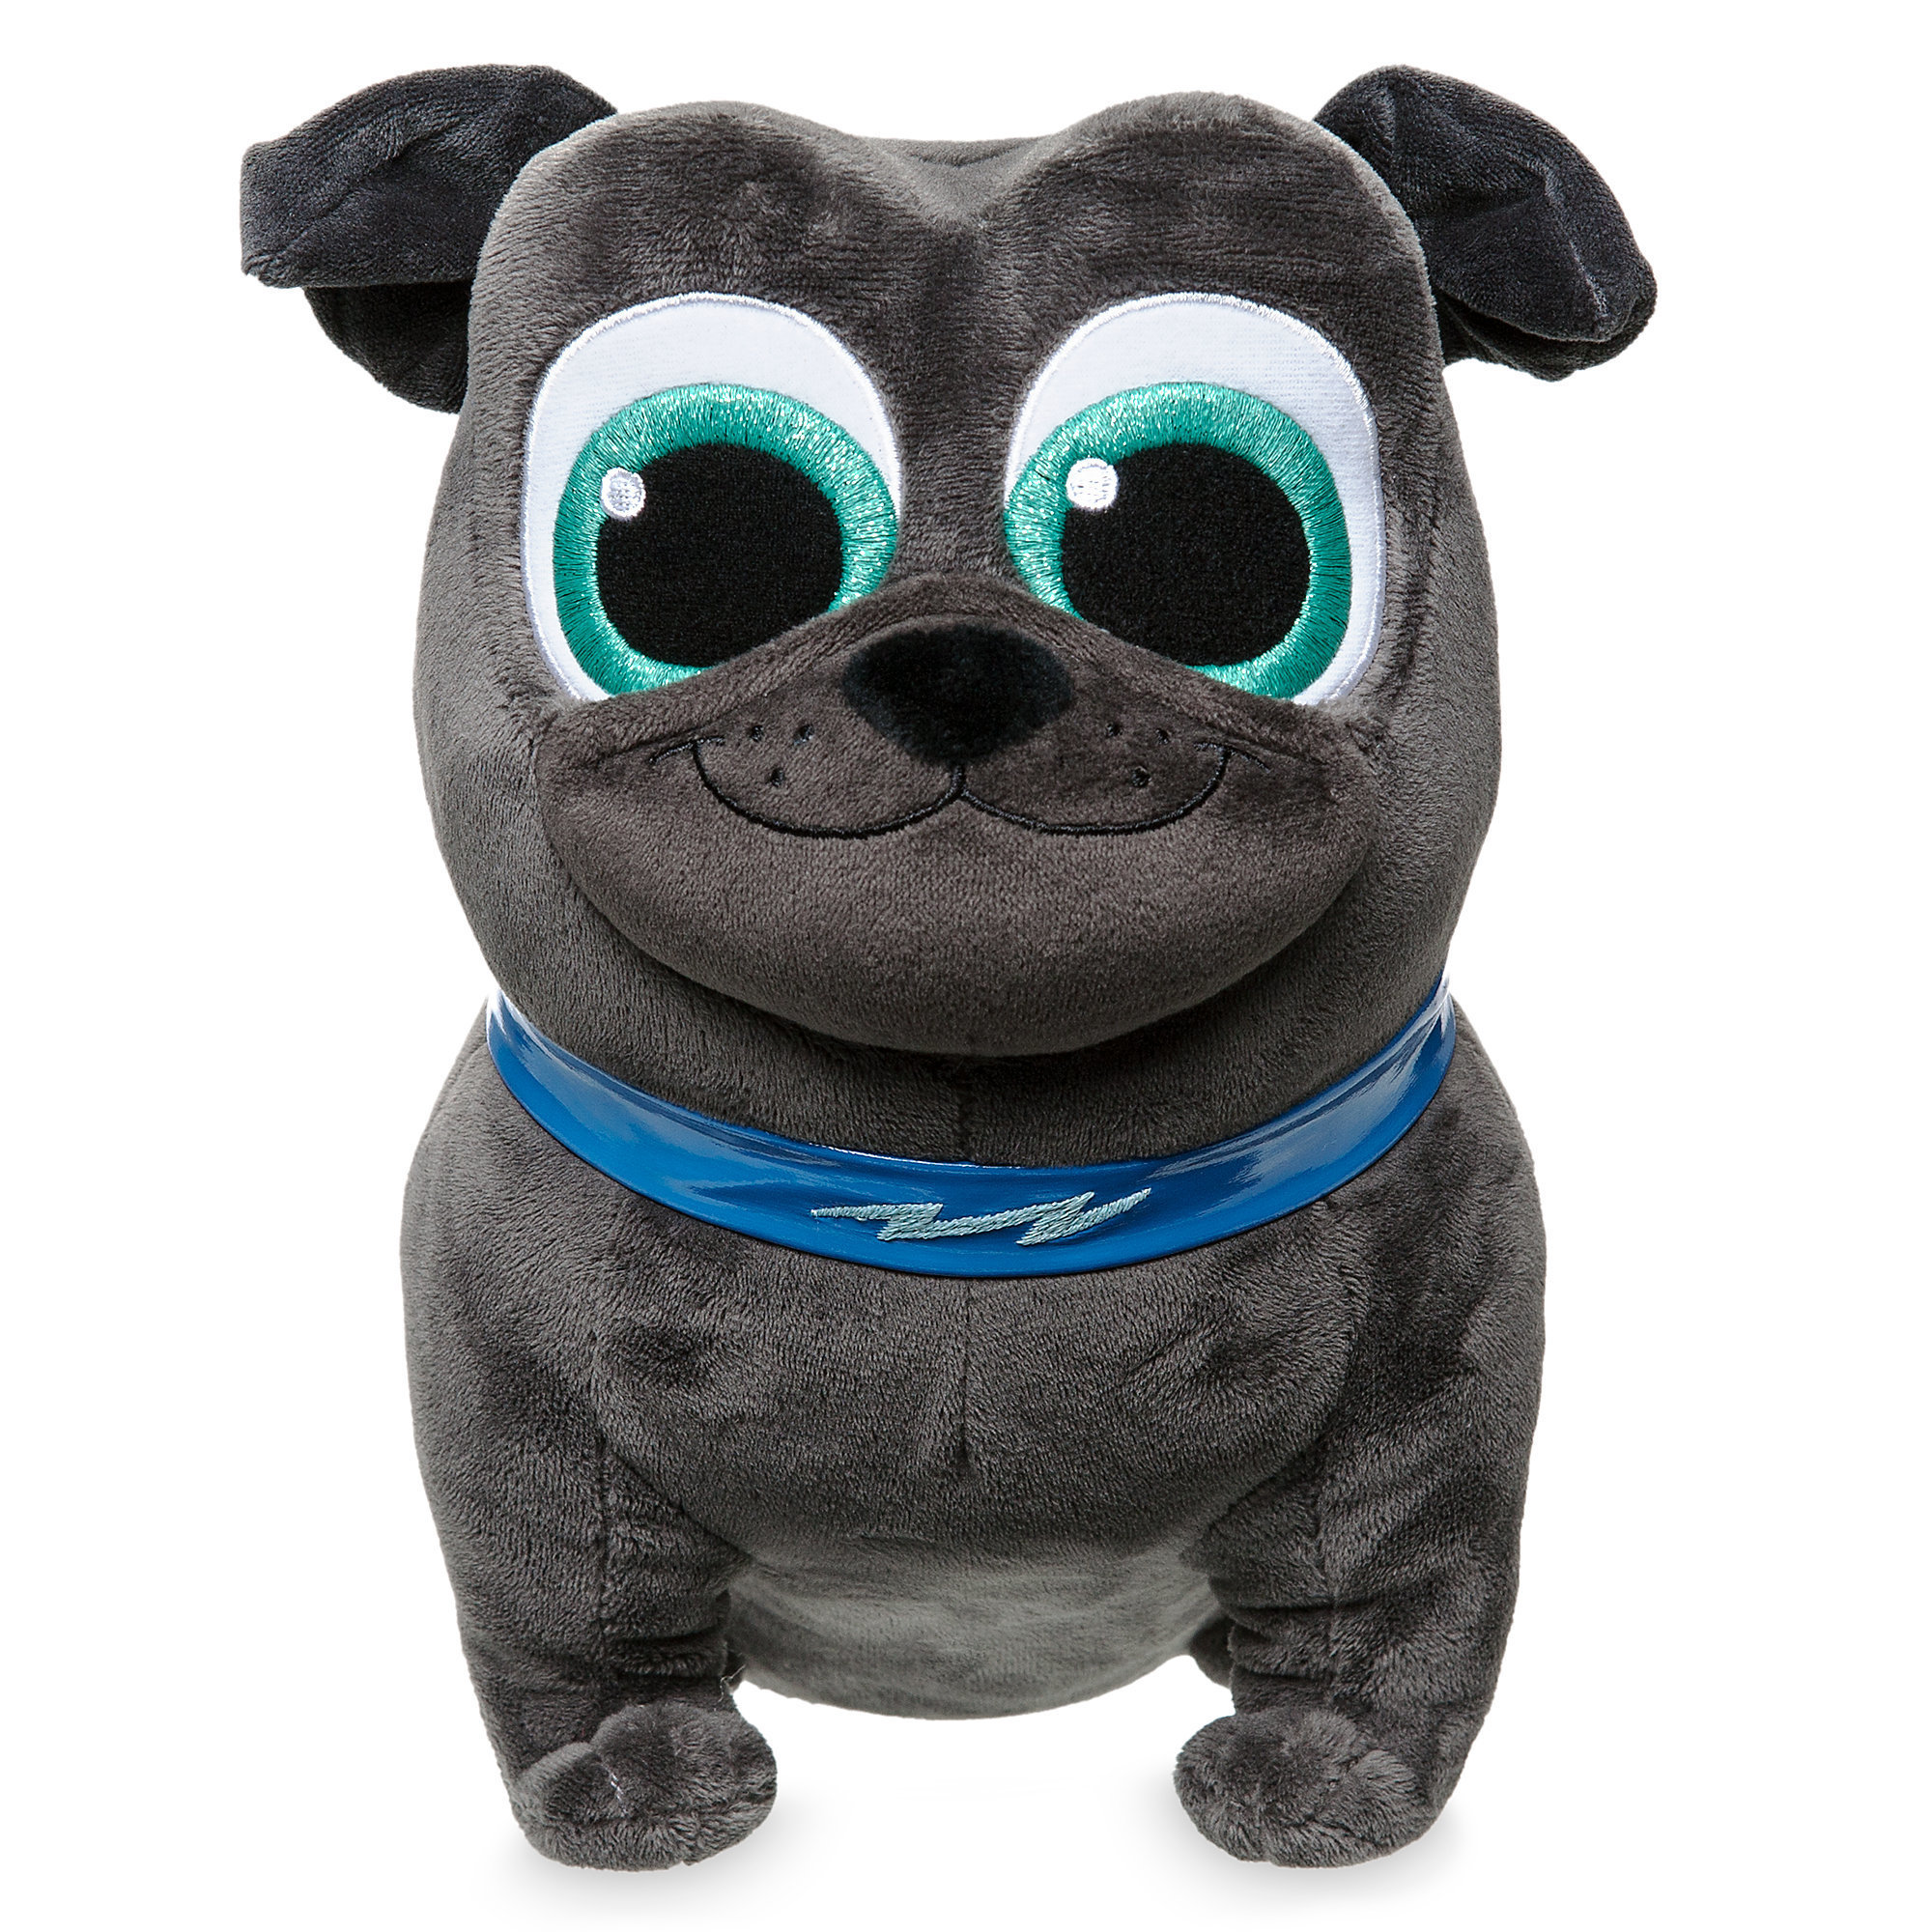 Disney Puppy Dog Pals Small Plush Bingo Dog Genuine Disney